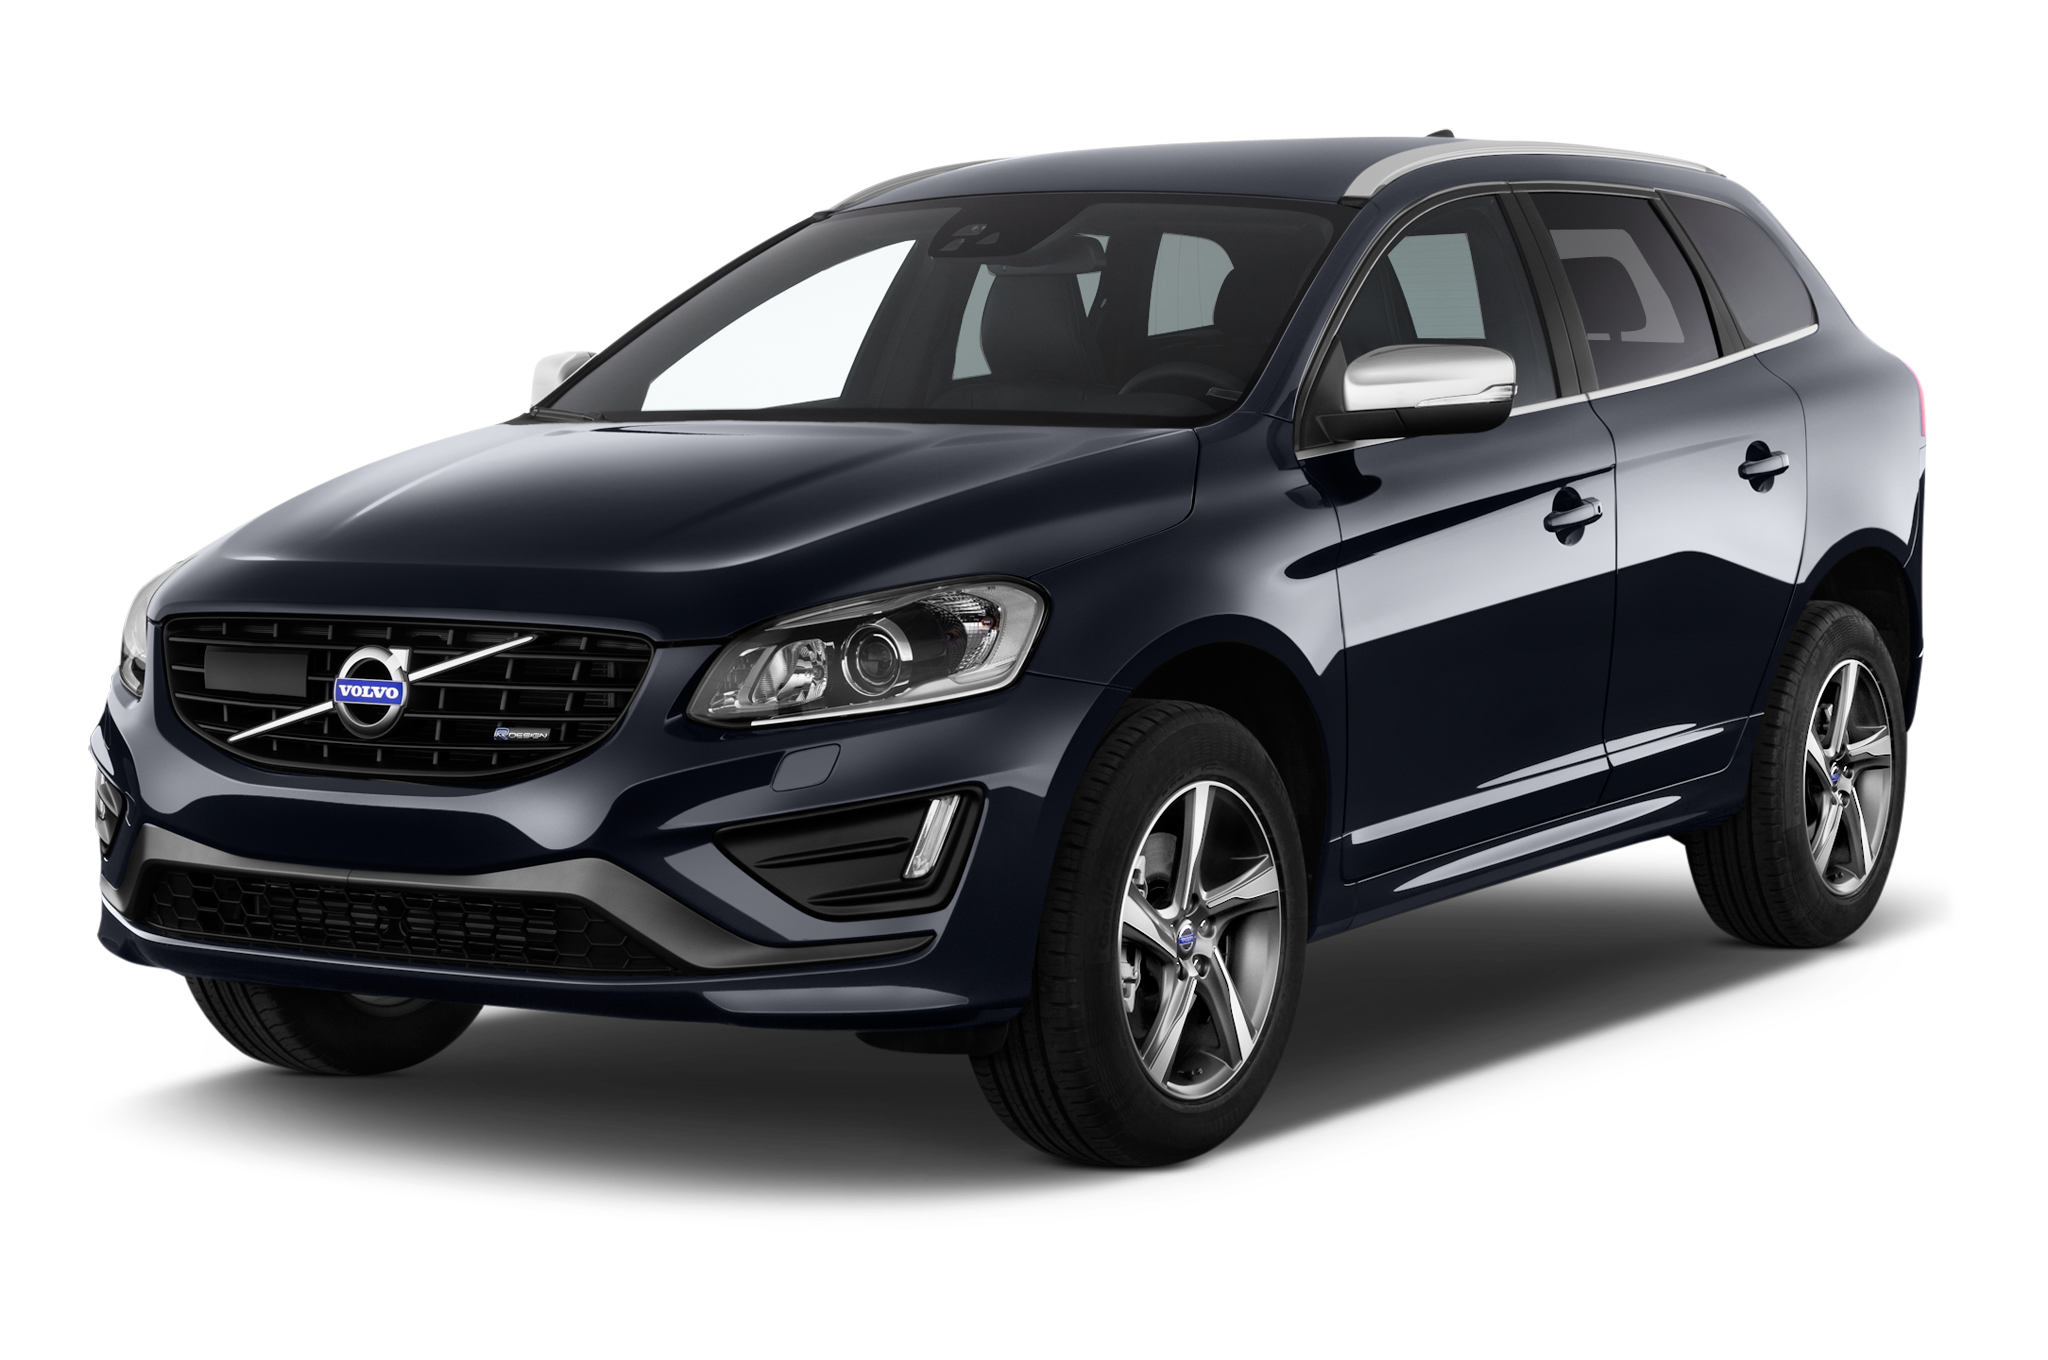 VOLVO XC60 AUTOMATIC <br> (Group J1)